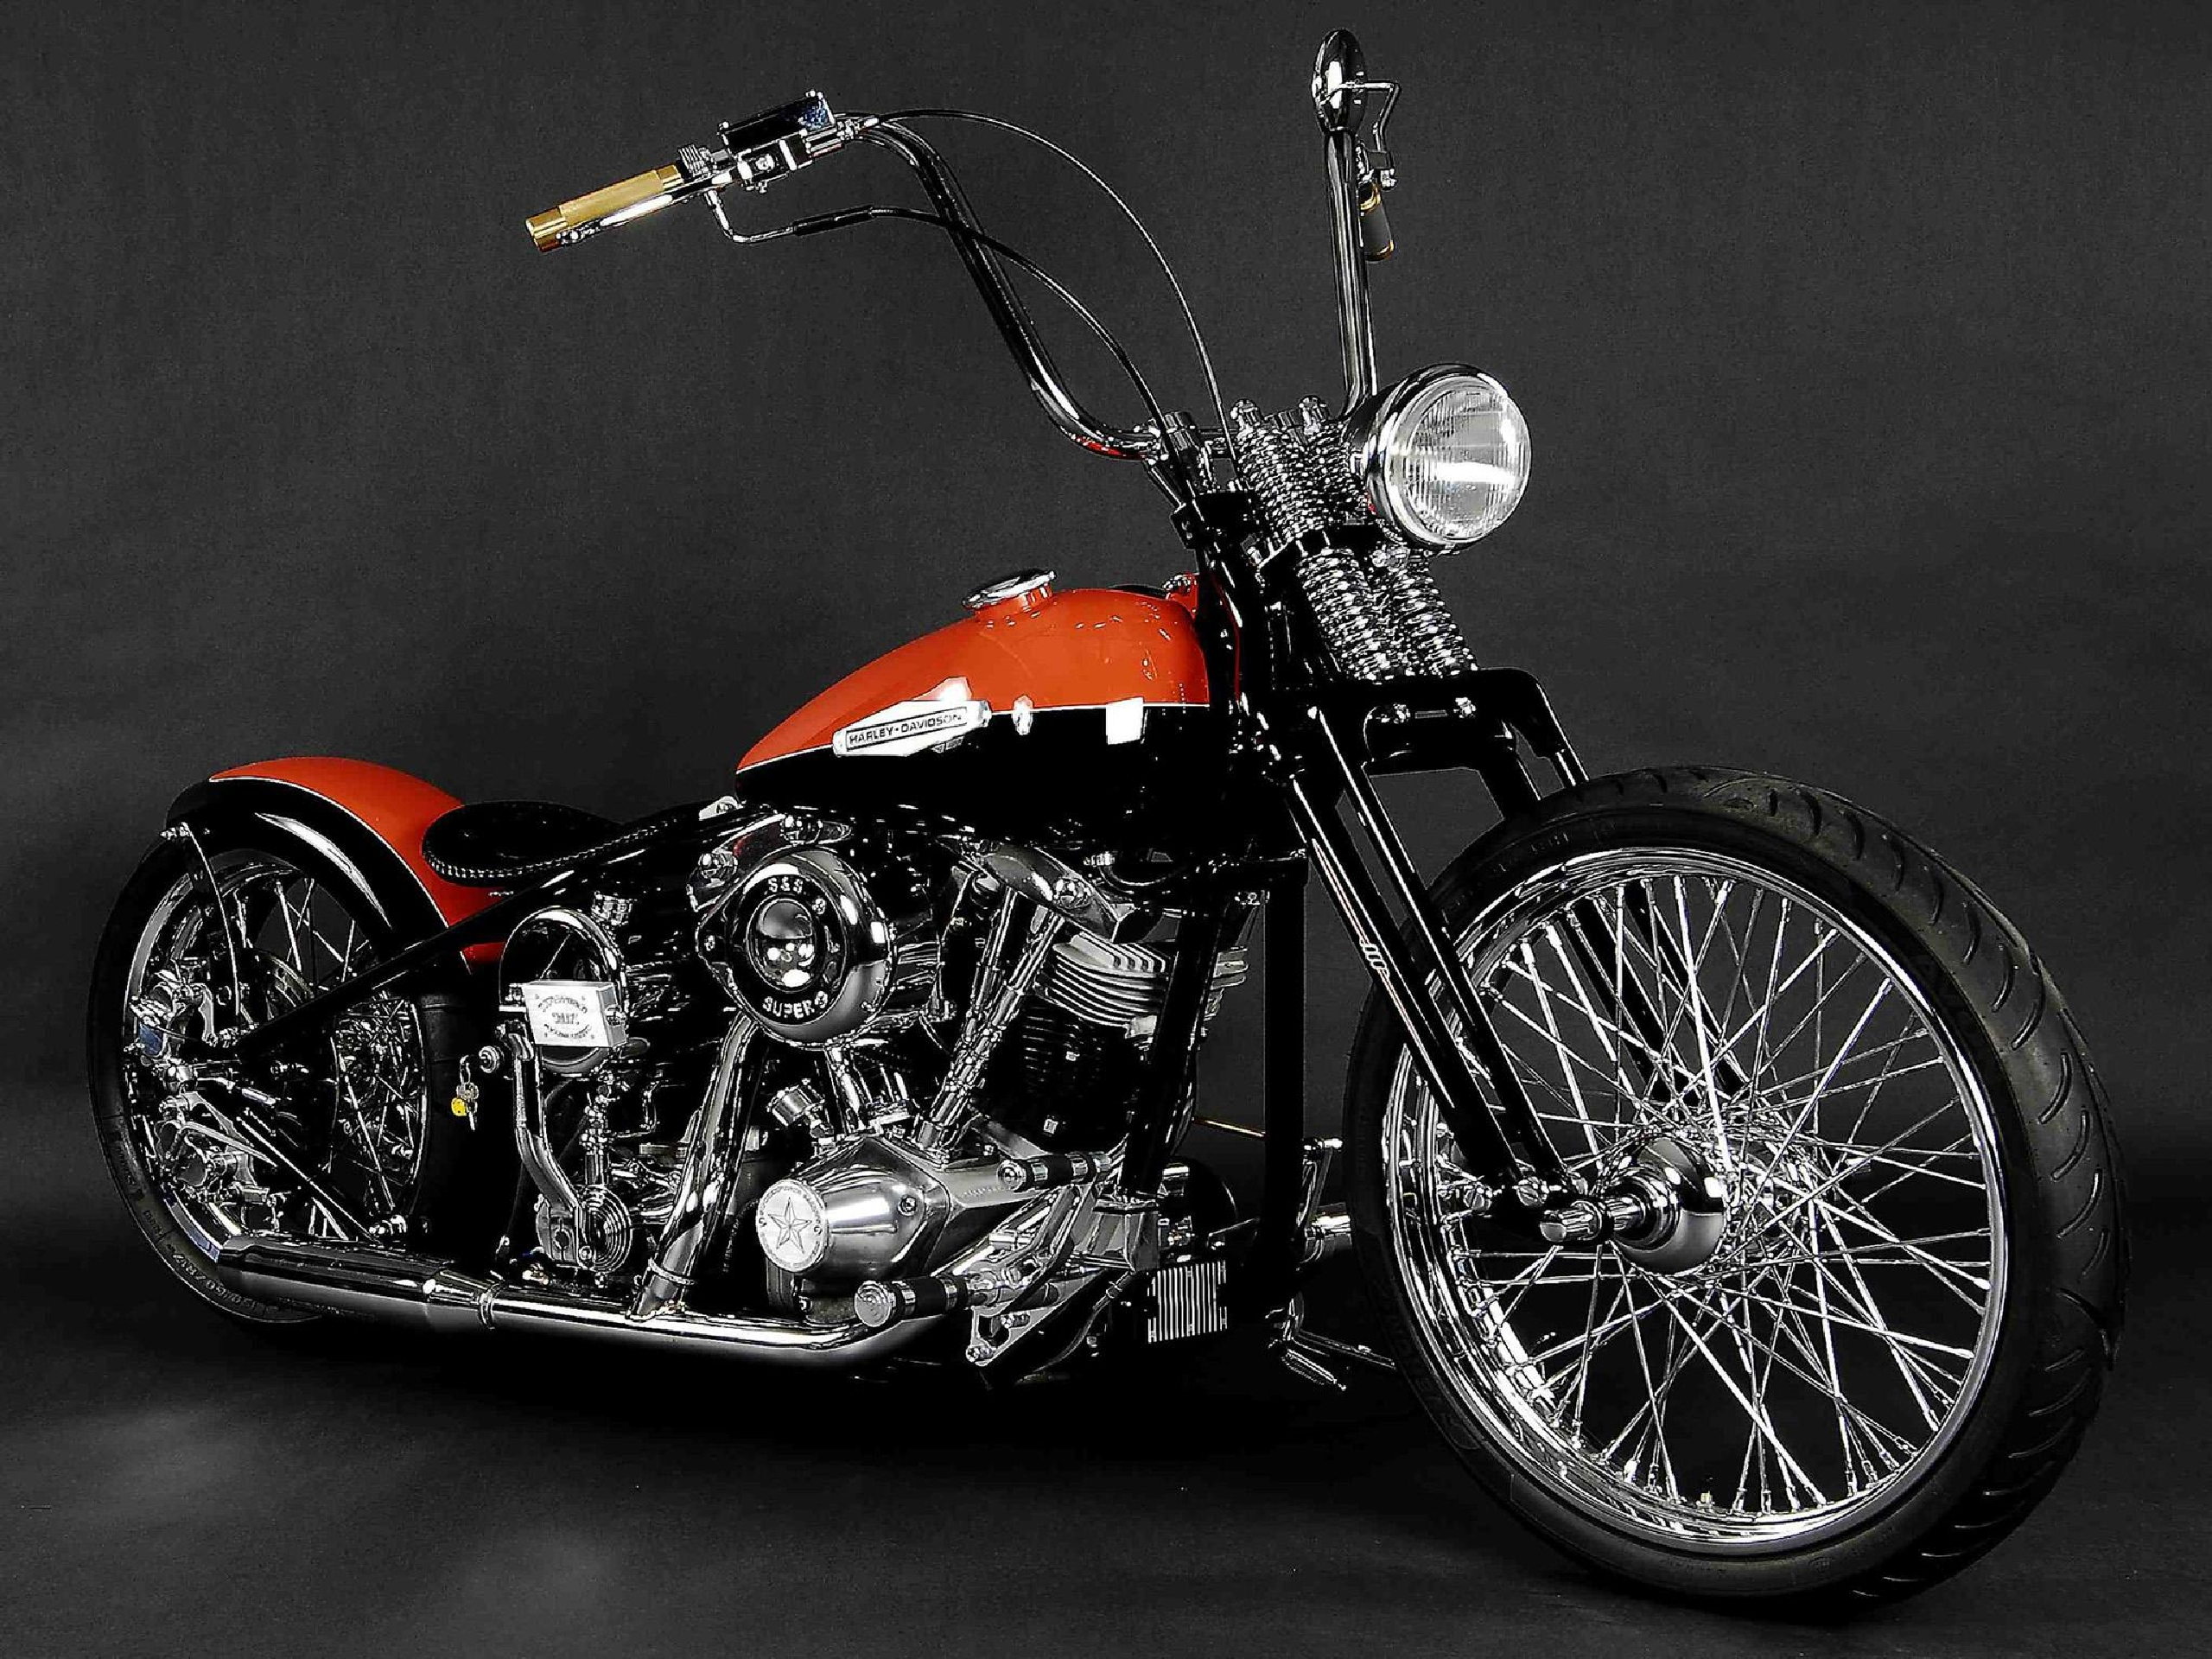 296 Harley-Davidson HD Wallpapers | Backgrounds - Wallpaper Abyss